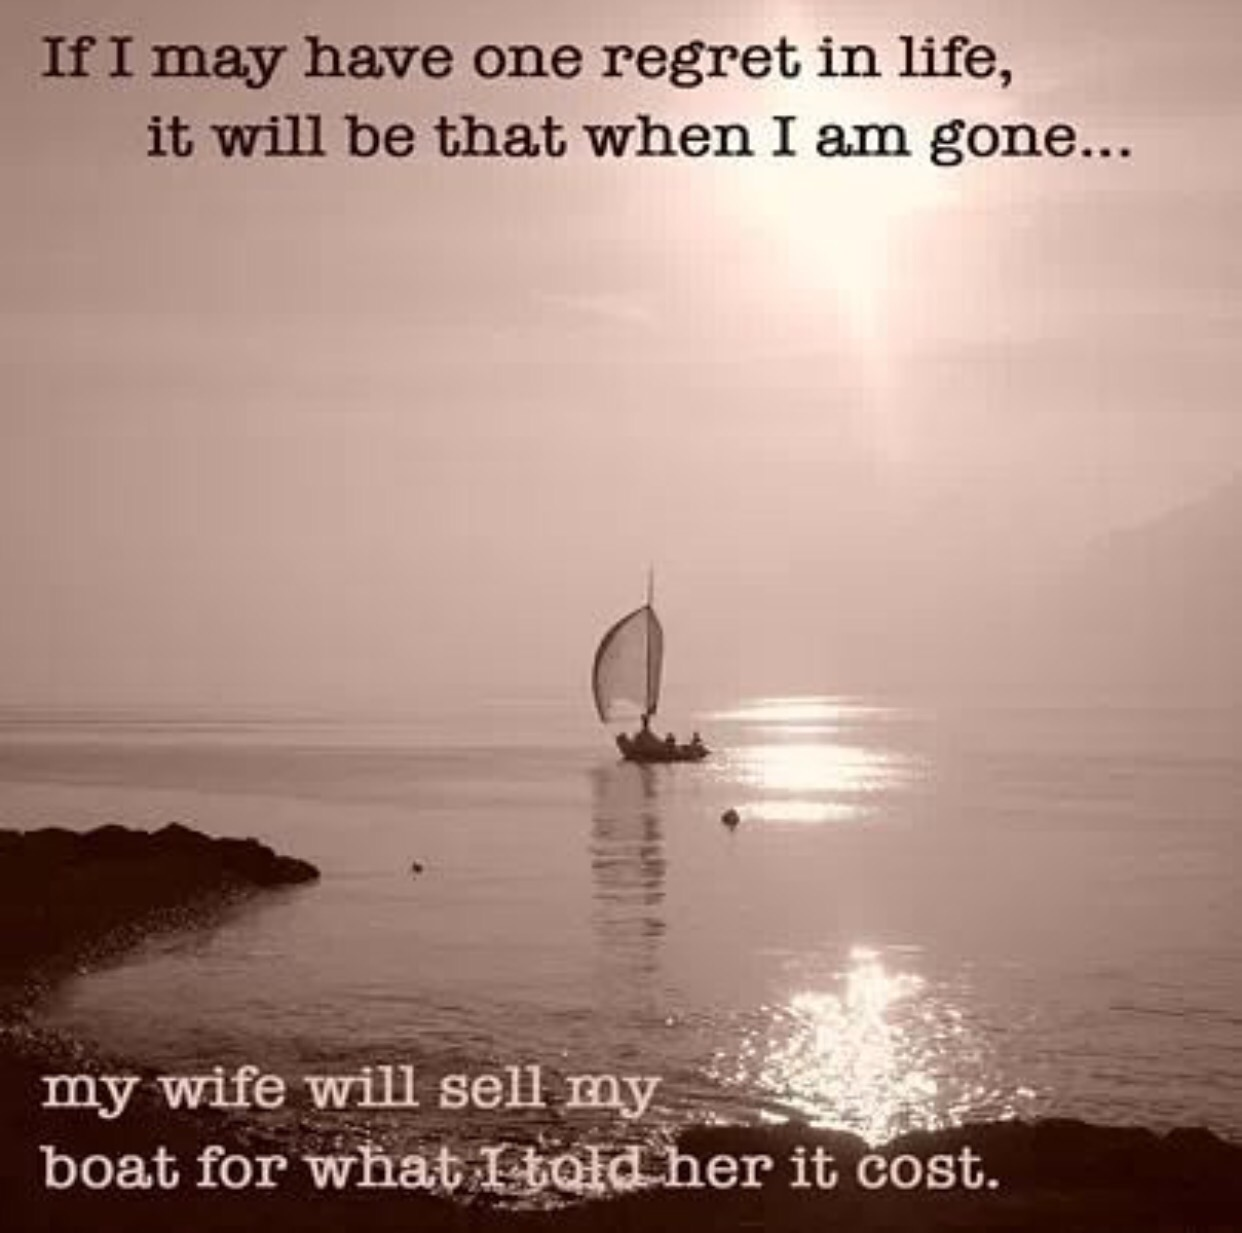 Quotes About Sailing And Life Regrets  My2Fish A Blog About Sunfish Sailing